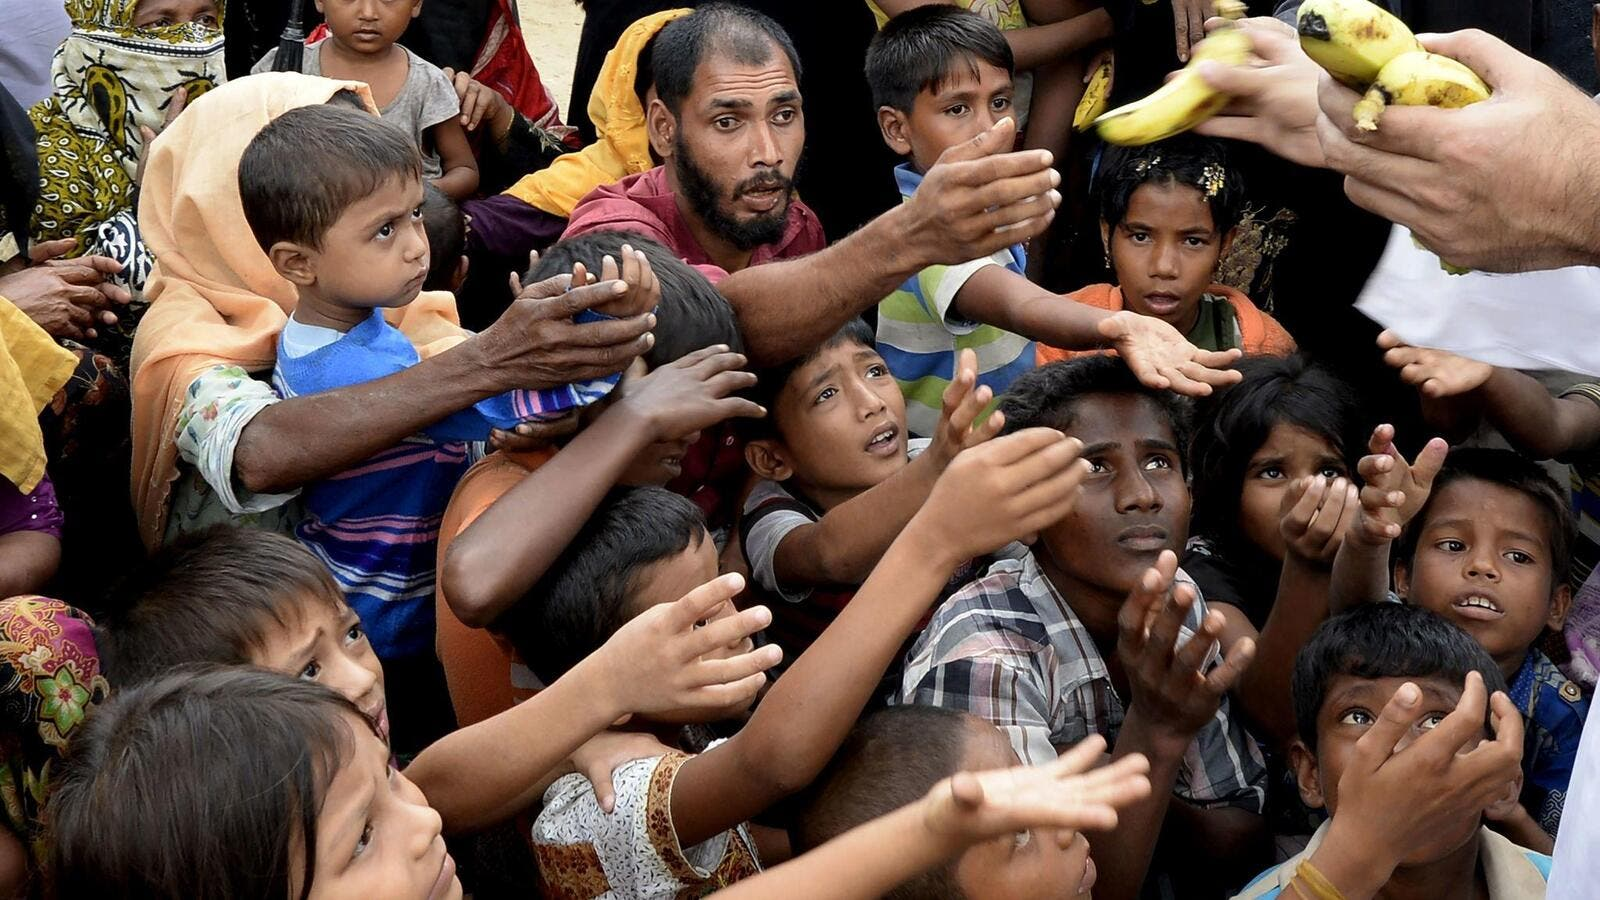 Rohingya refugees receive bananas from a Bangladeshi volunteer after crossing from Myanmar into Bangladesh at Shah Porir Dwip Island near Teknaf . (Tauseef Mustafa / AFP/Getty Images).